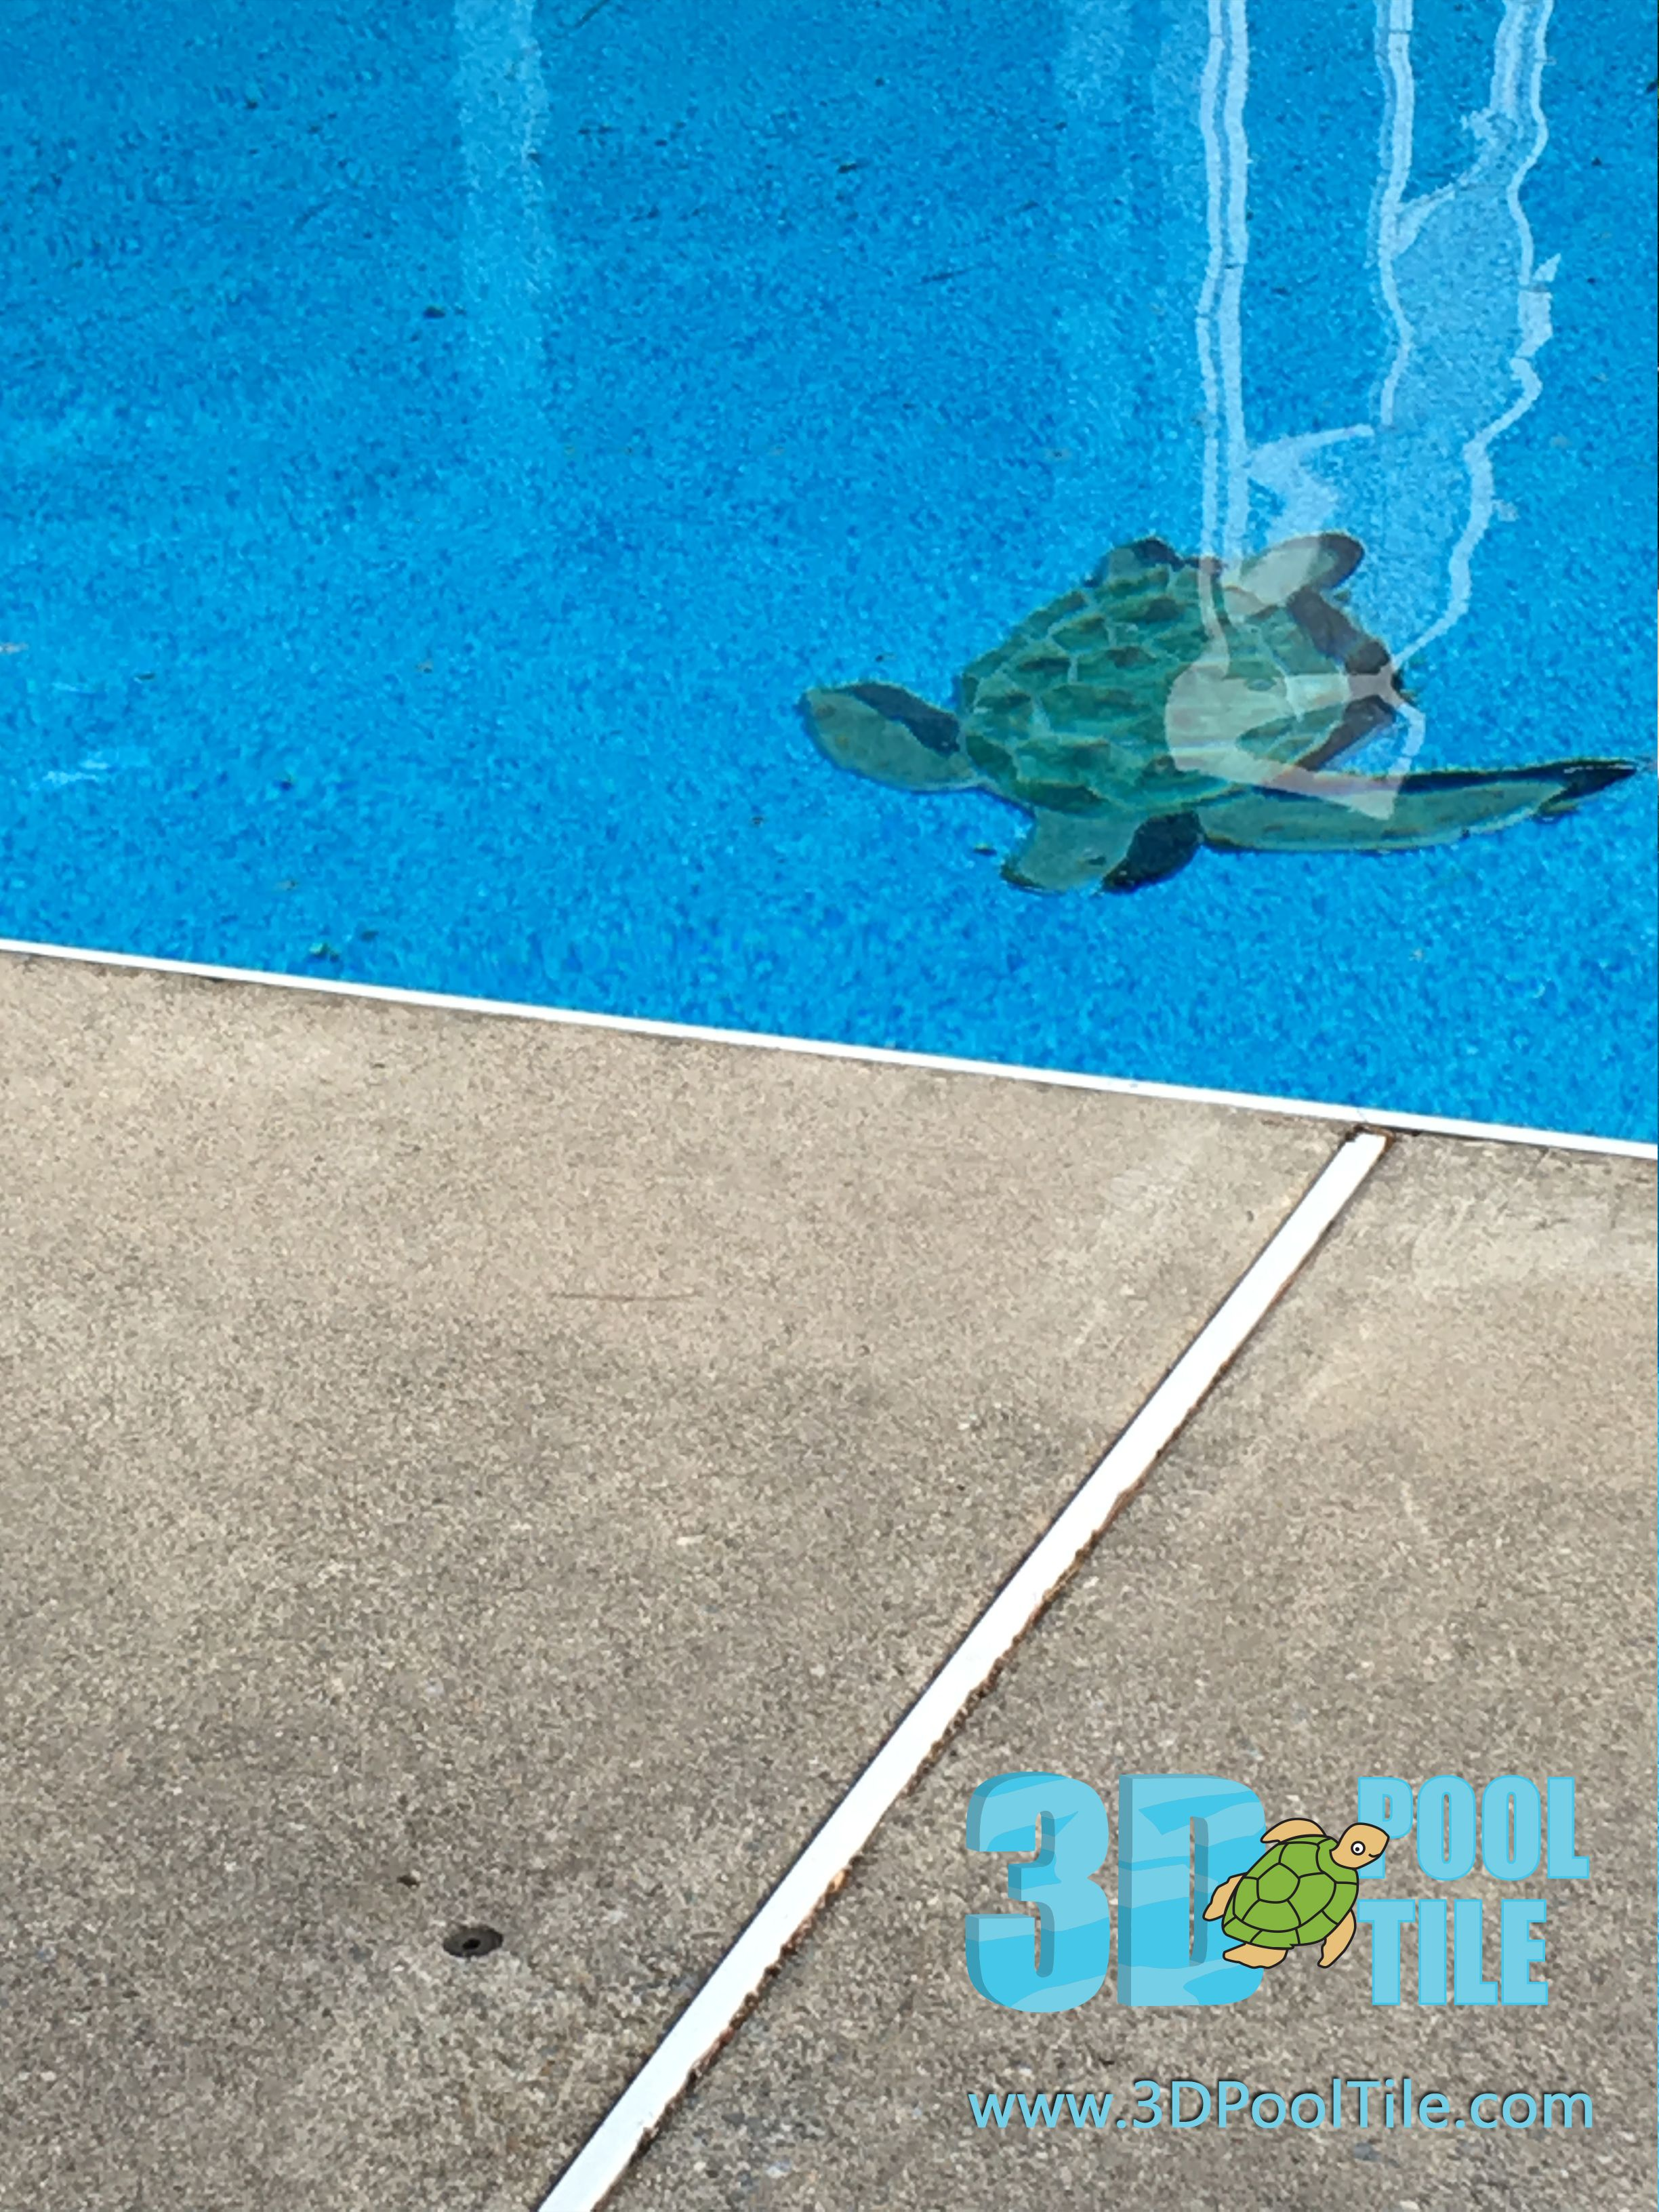 3d pool tile turtle- looks like he is swimming to the deck. diy